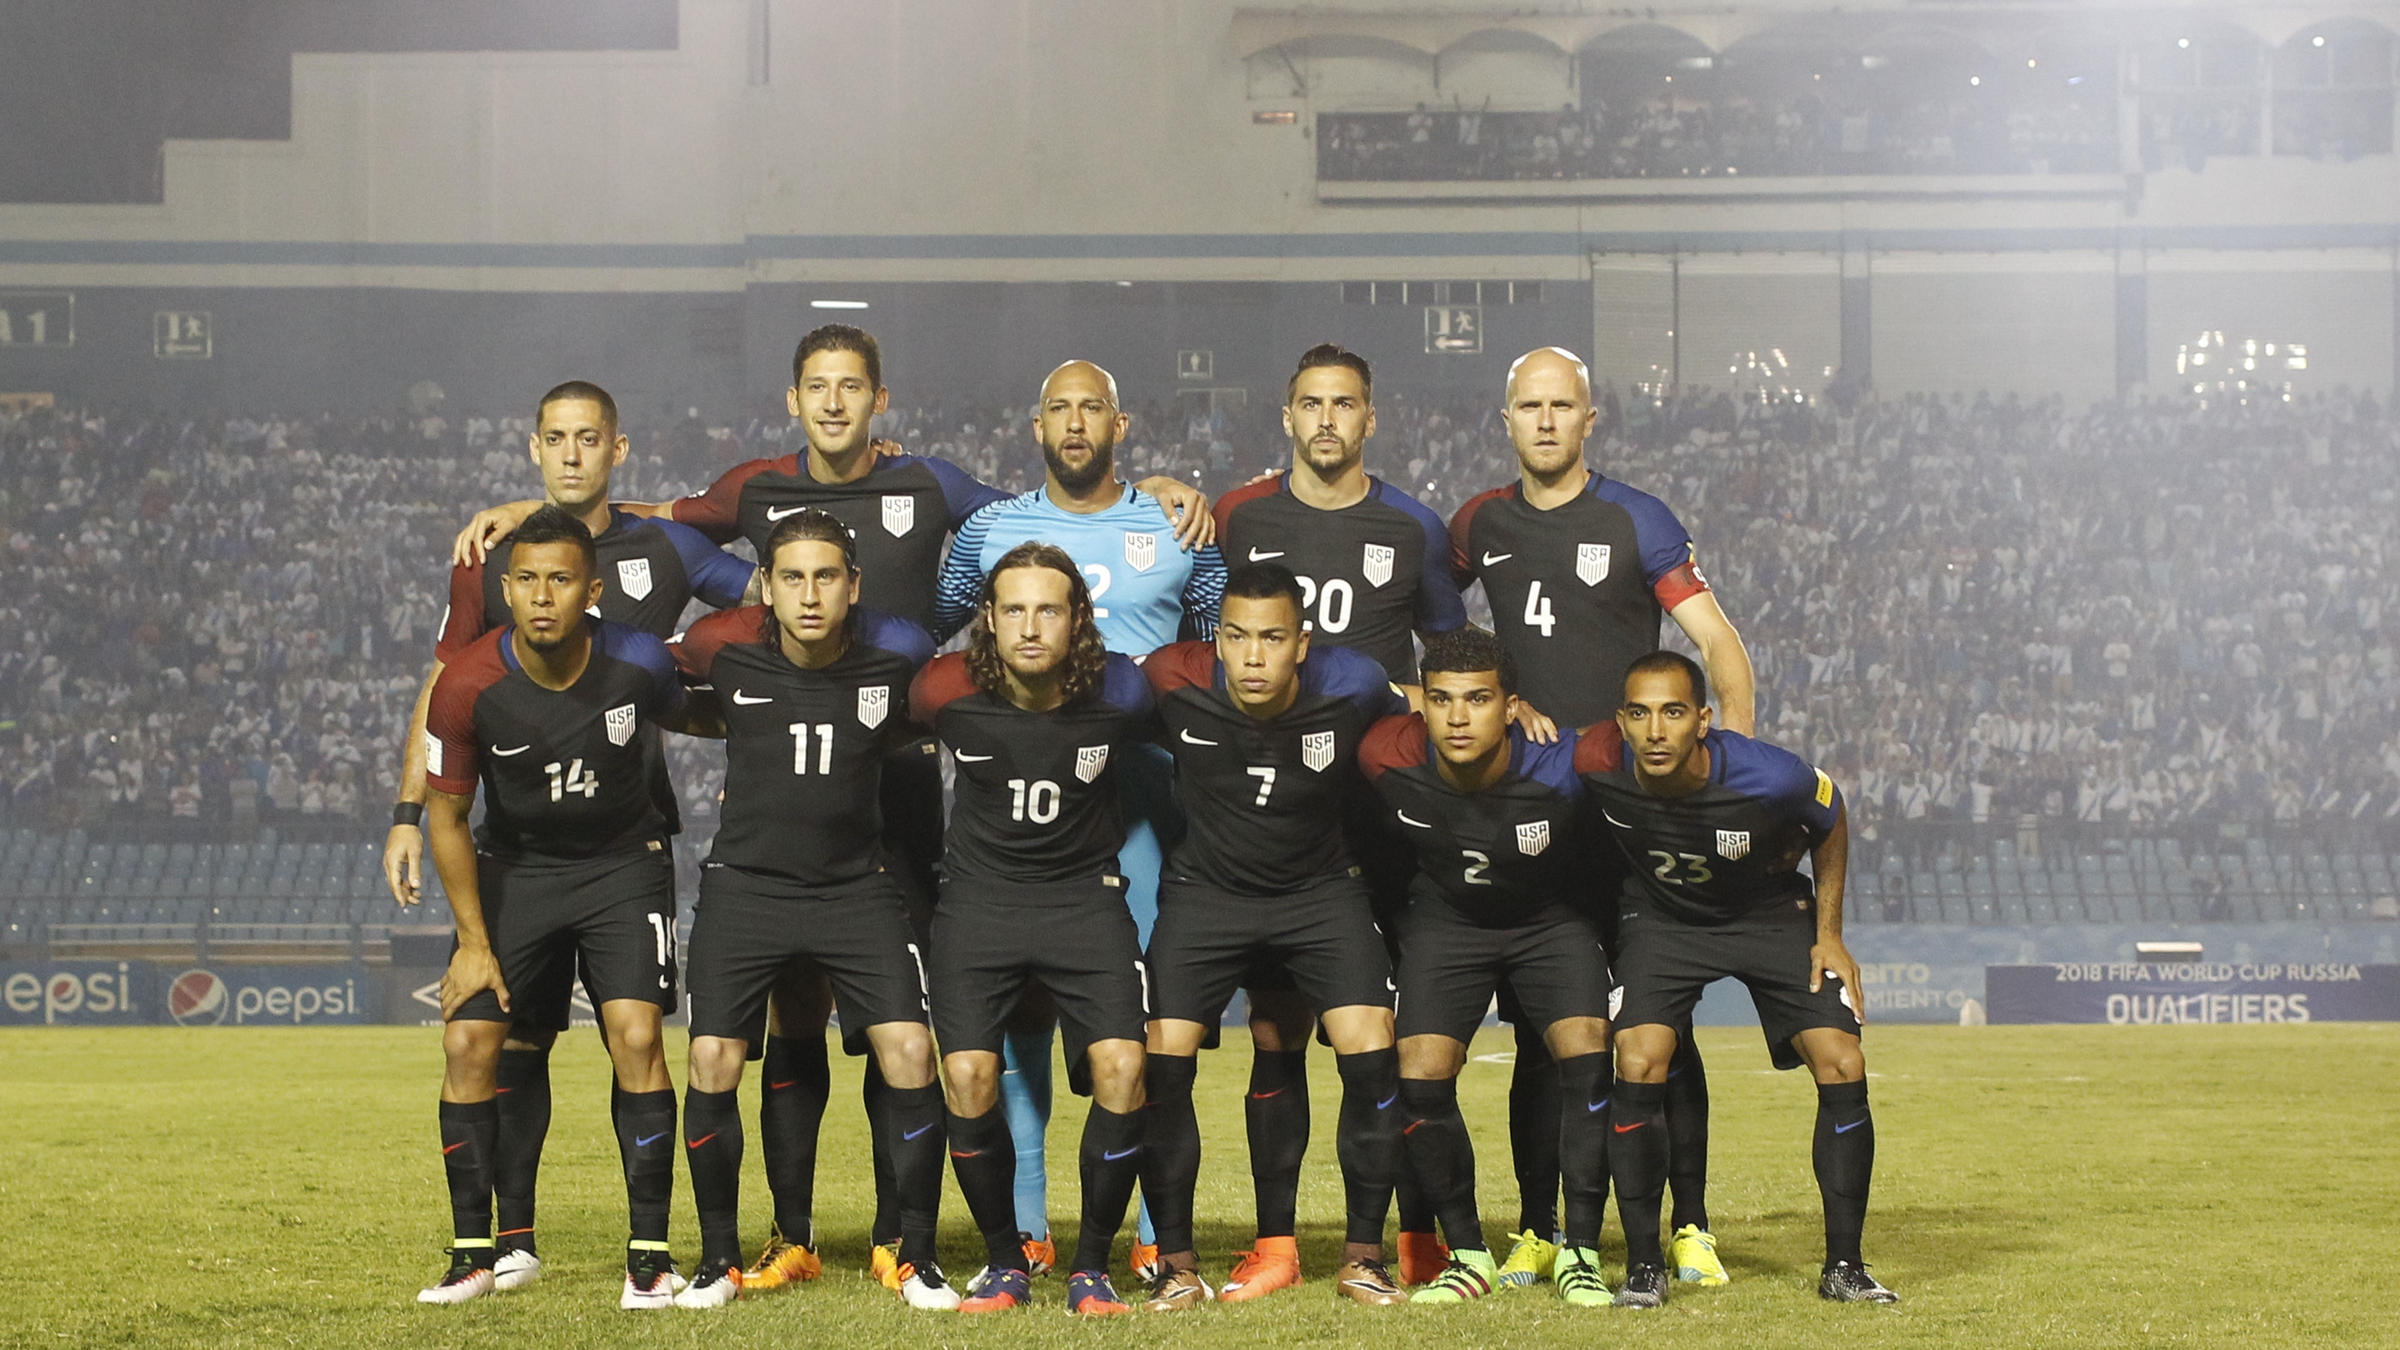 2018 Us Mens World Cup Team